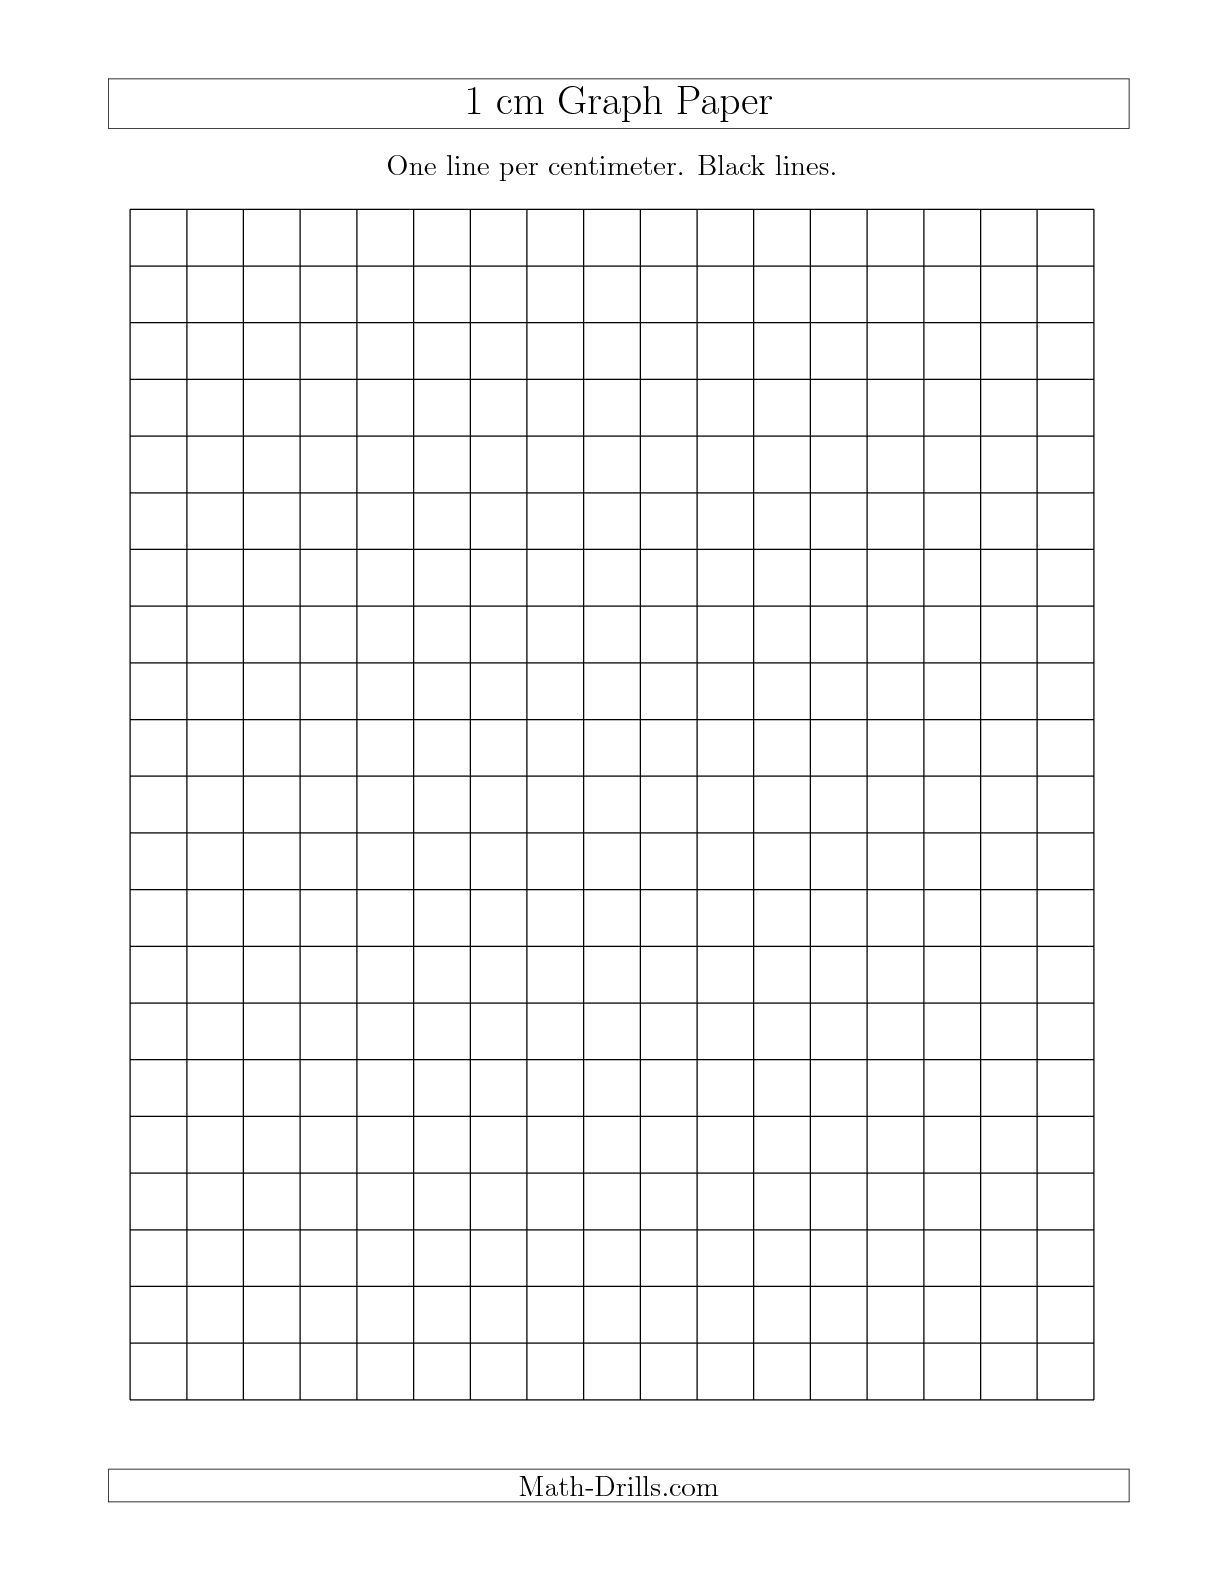 Worksheets Graph Paper Worksheet the 1 cm graph paper with black lines a math worksheet from page at drills com